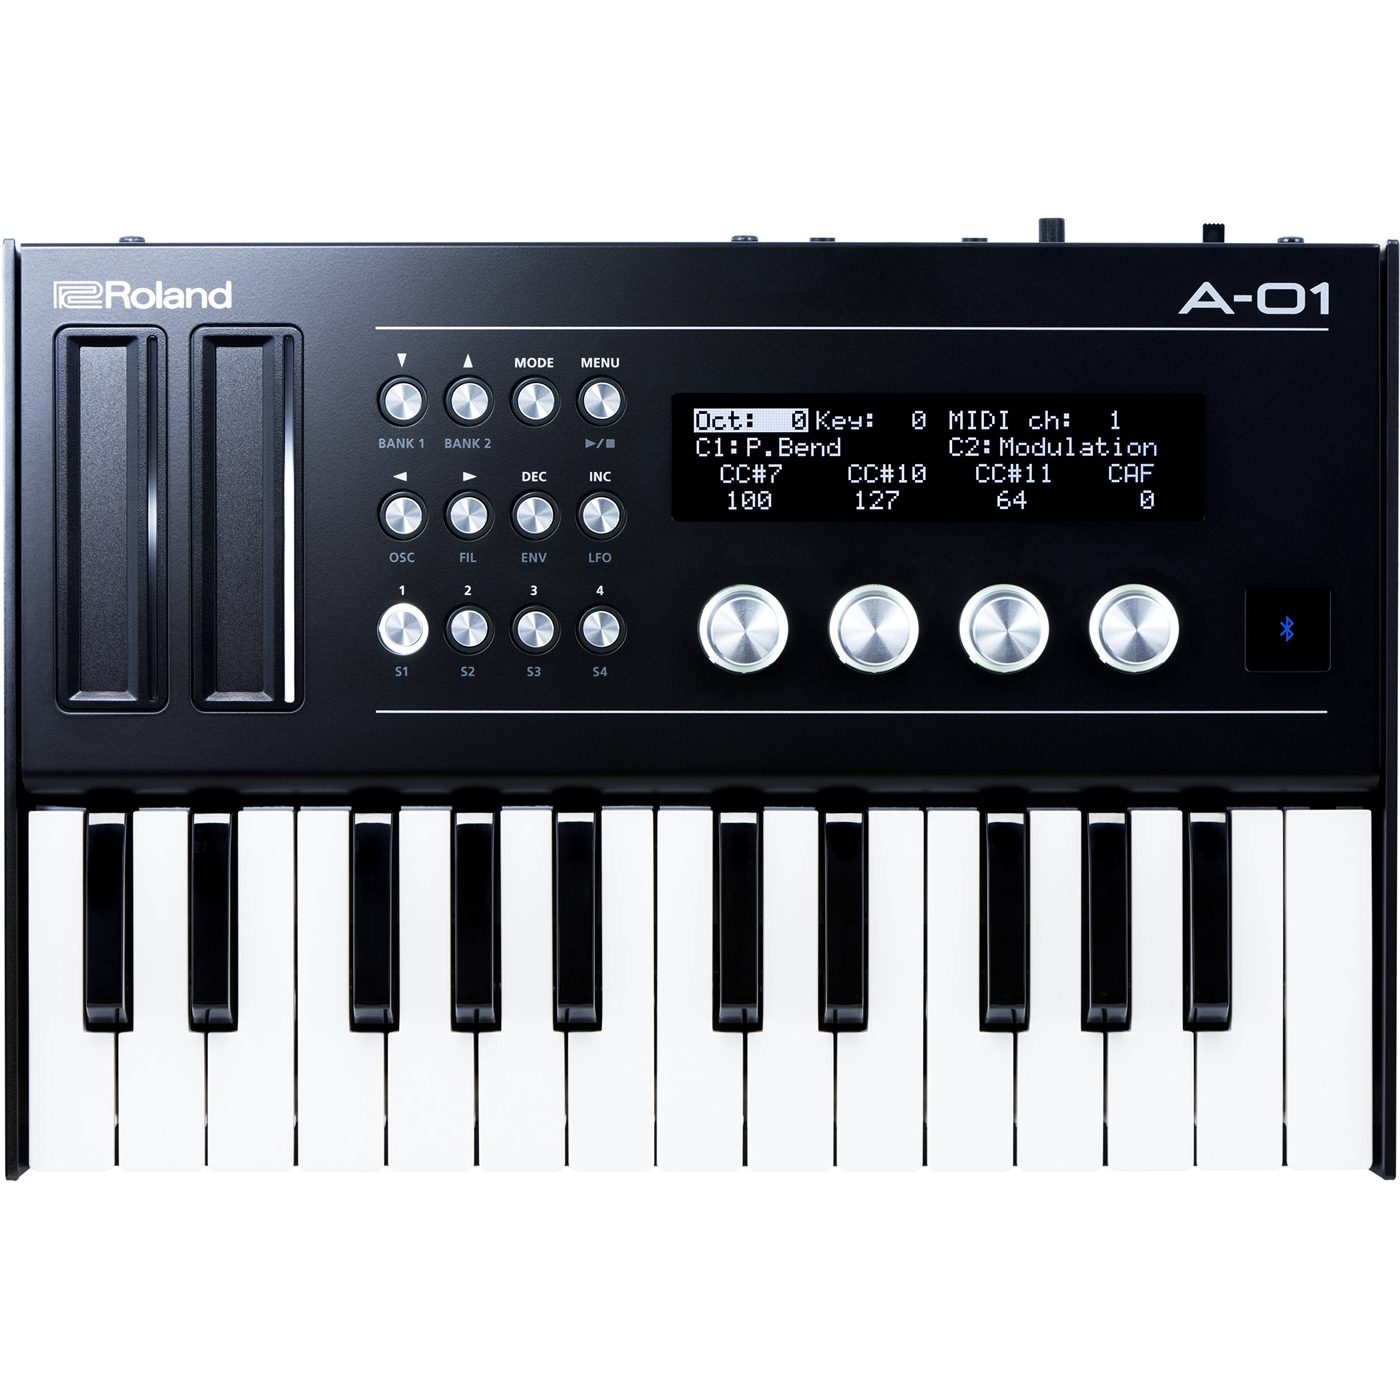 A-01K Roland  Roland A-01K 8-bits synth inkl. K-controller.